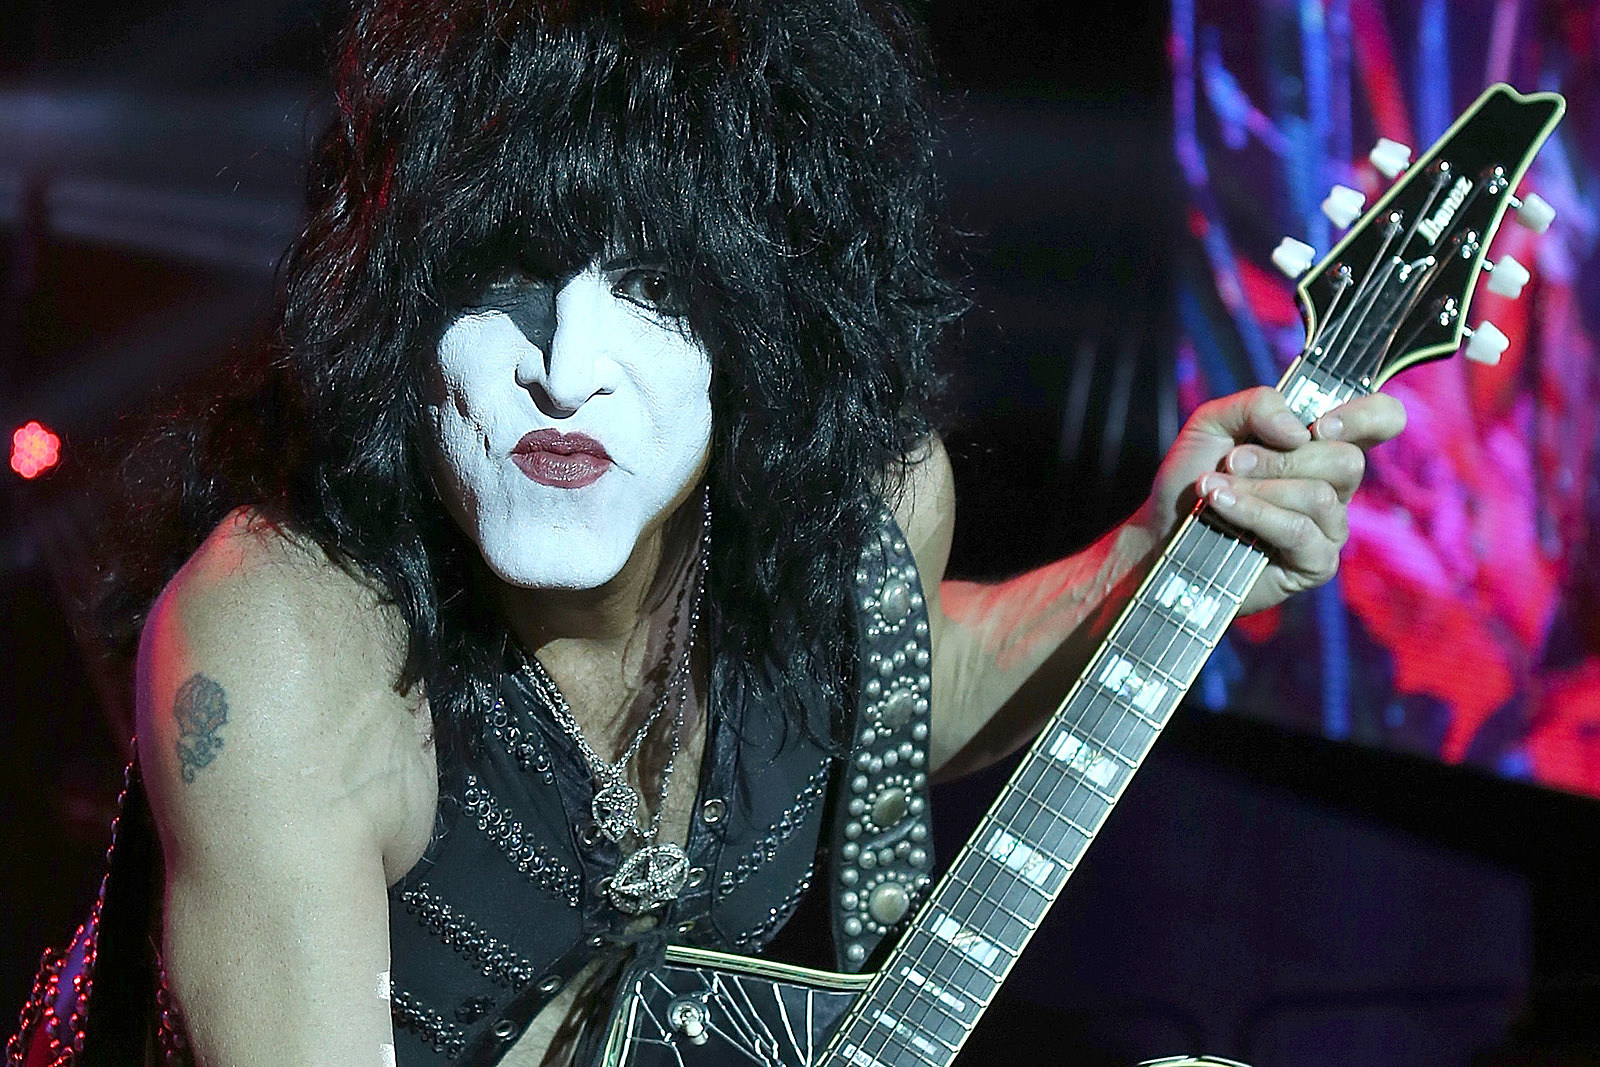 Paul Stanley on New Kiss Music: 'No, I Don't Think So'